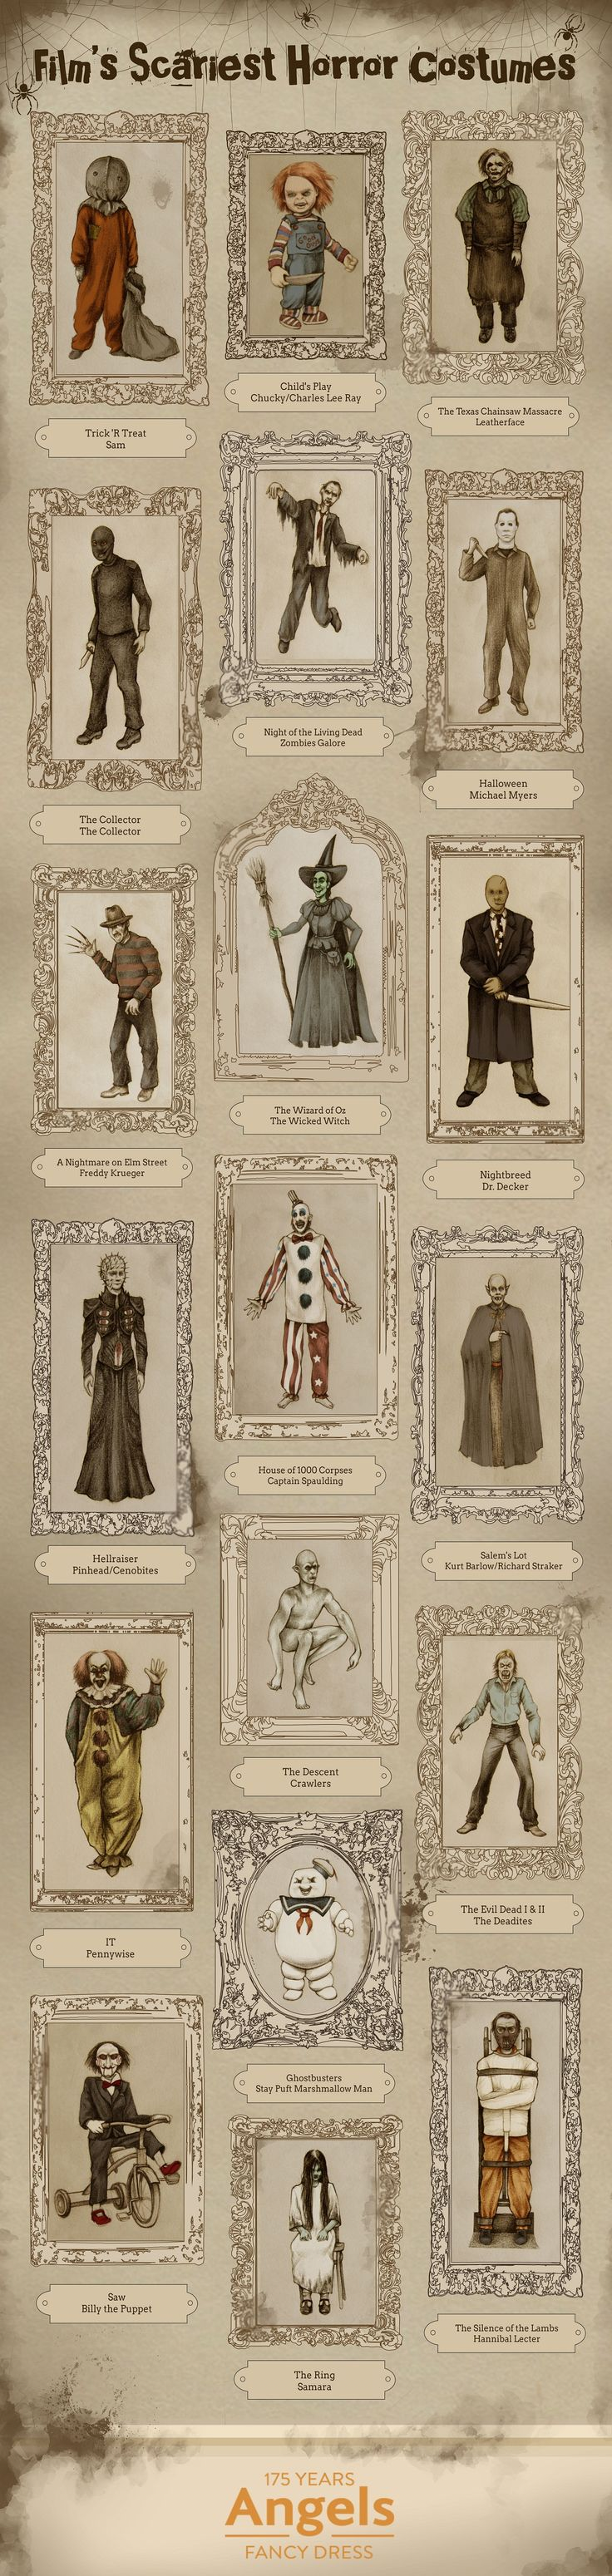 Film's Scariest Horror Costumes #infographic #HorrorCostumes #infografía